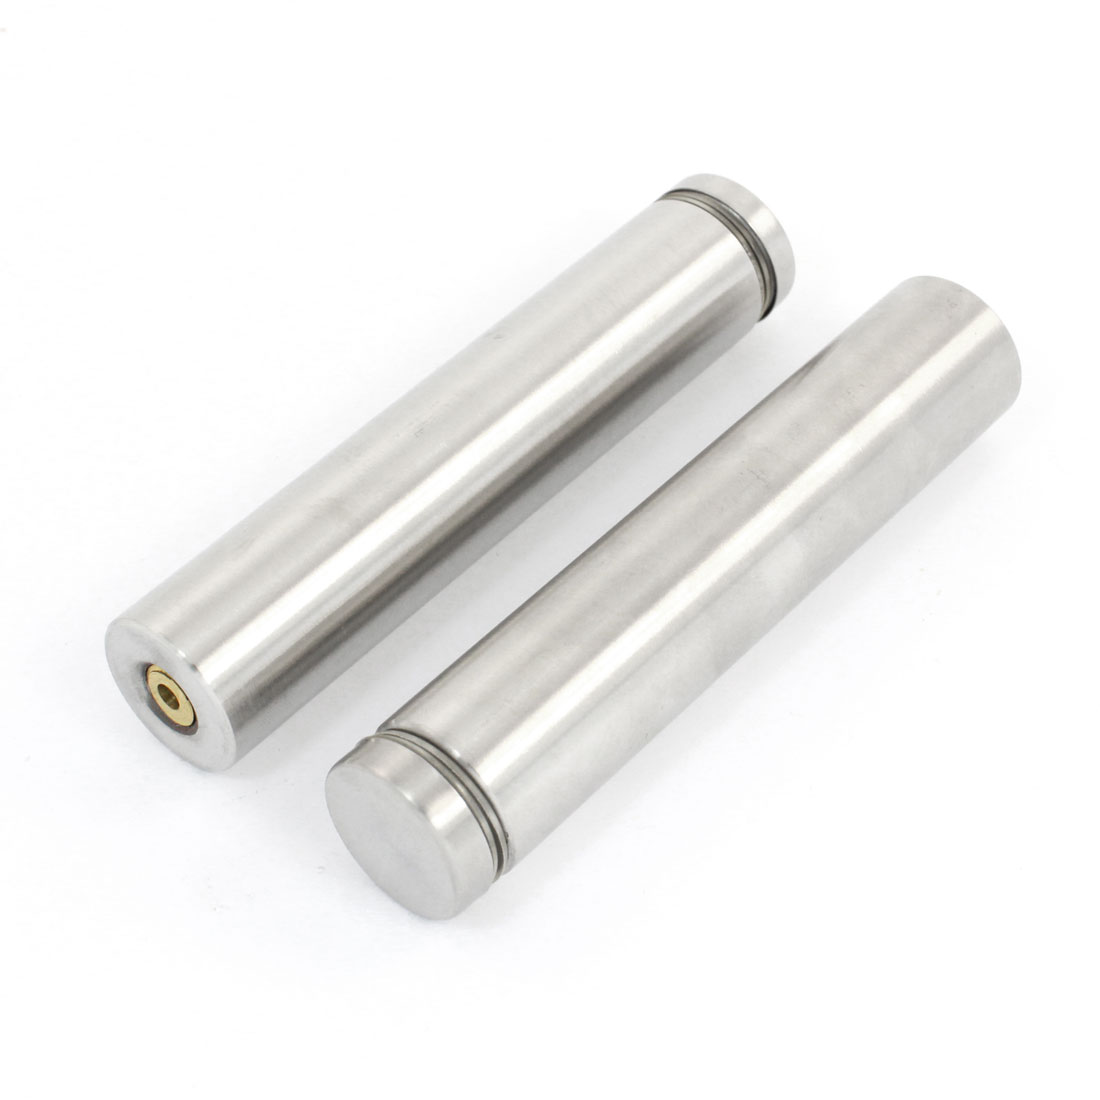 2PCS Hardware 25mm Dia 120mm Long Stainless Steel Round Standoff for Glass